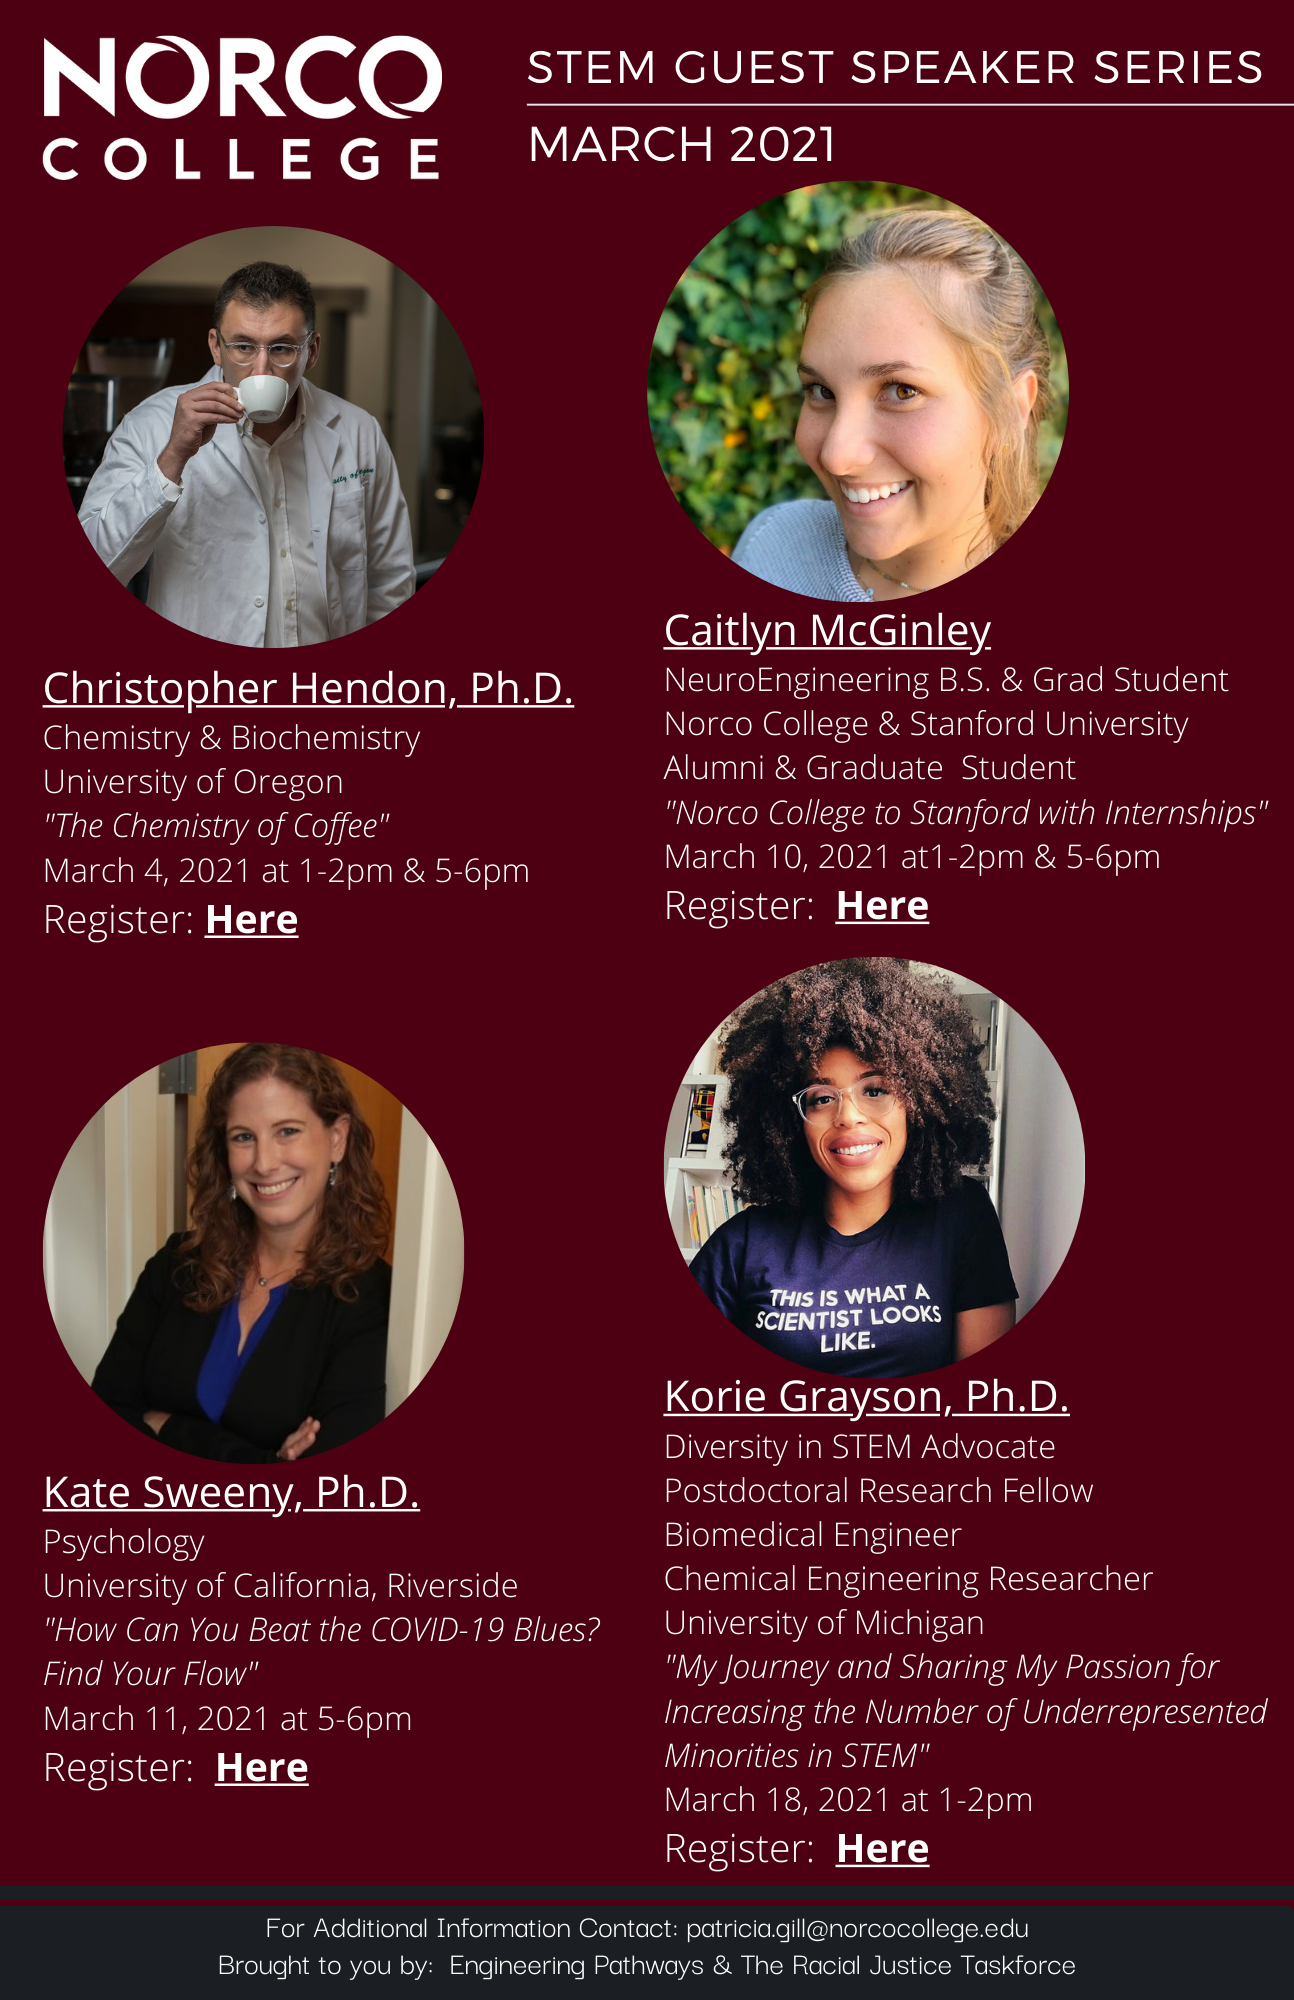 STEM Guest Speaker Series - SPRING 2021_highquality.p1.png